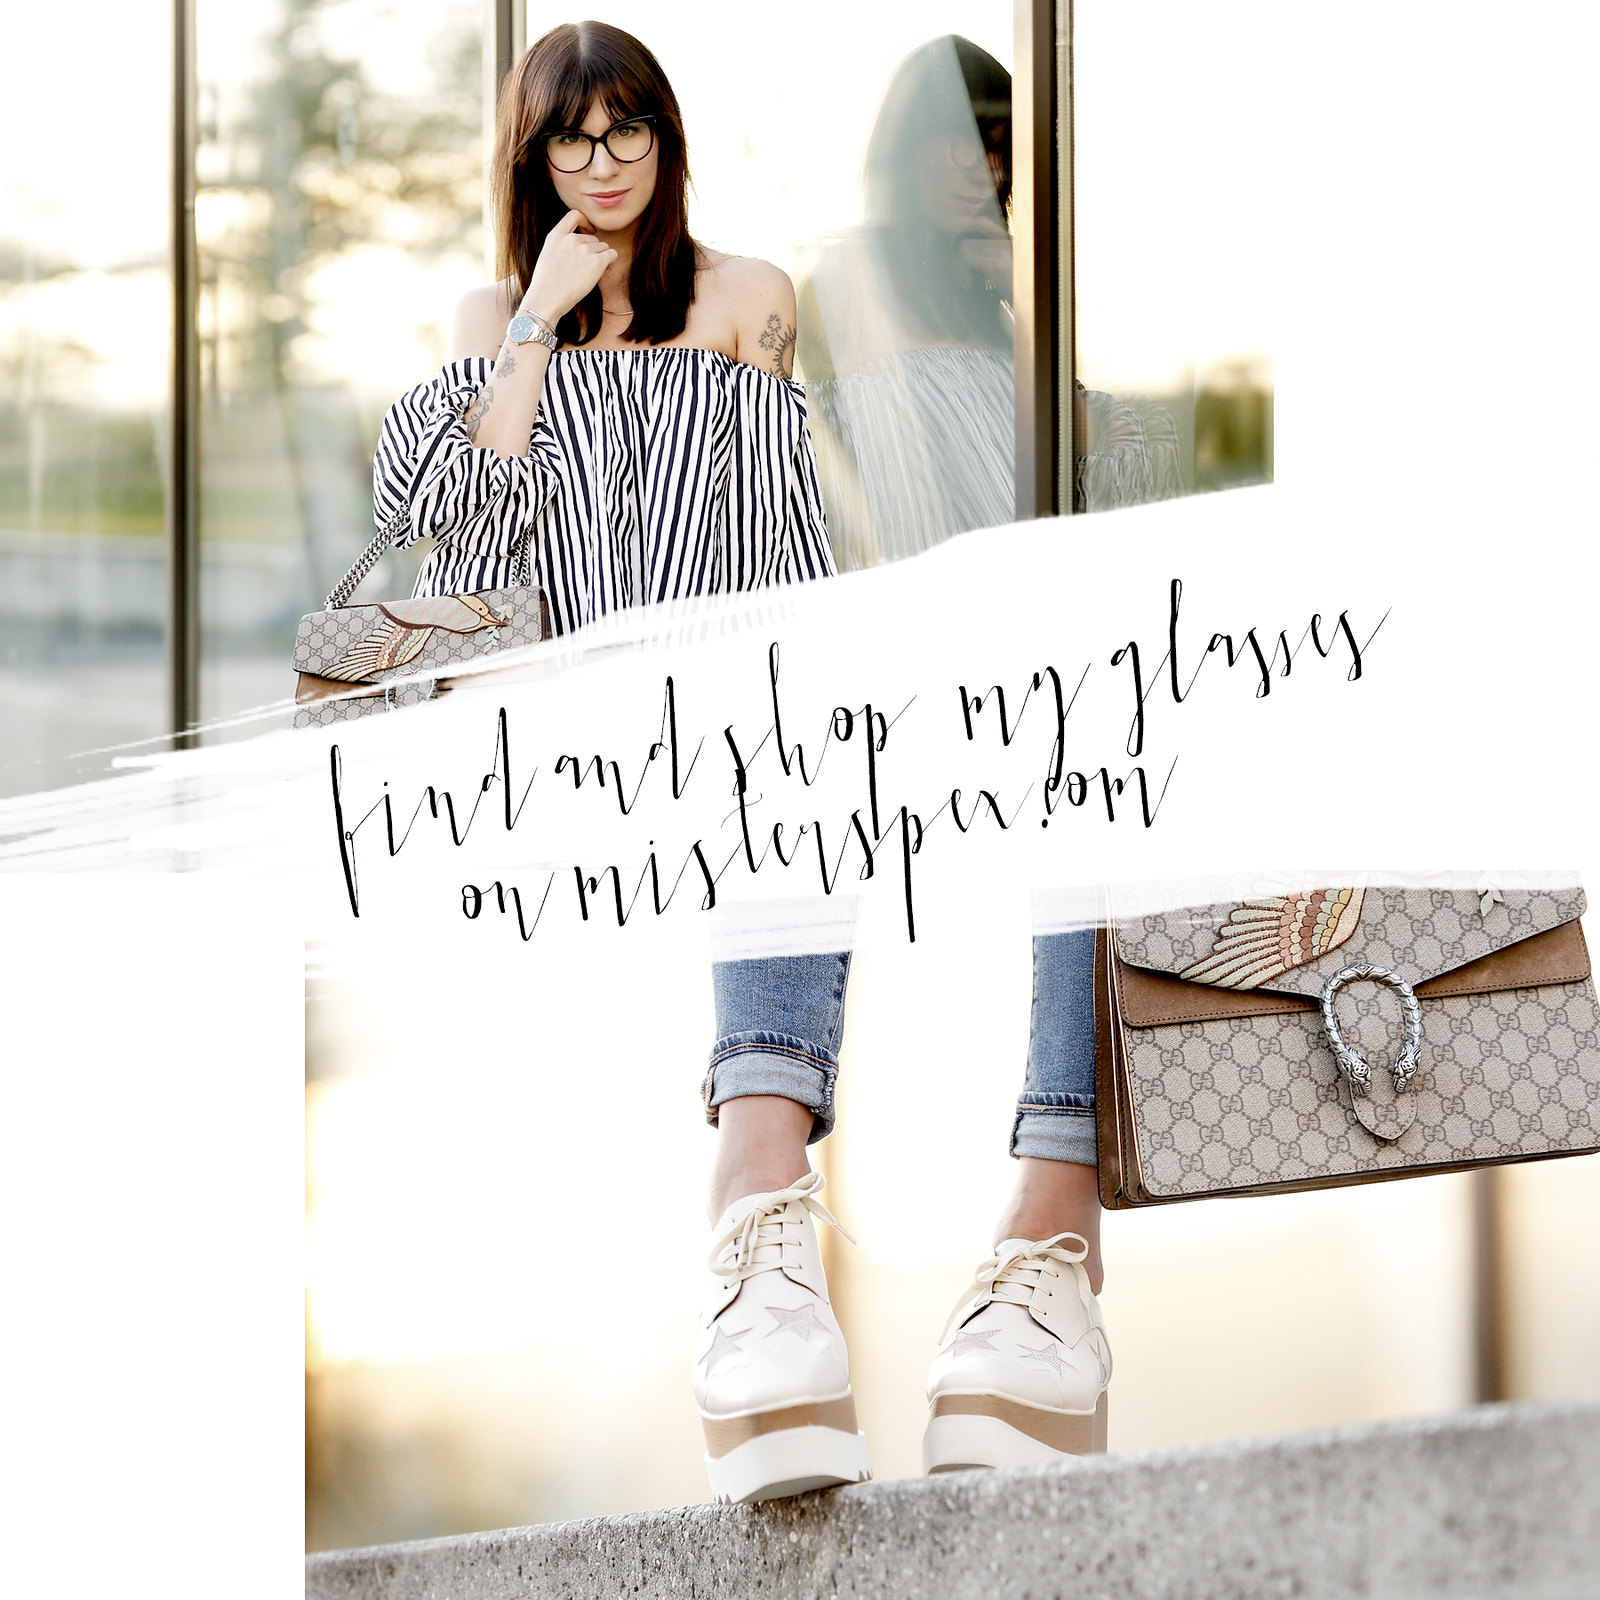 blogger for mister spex glasses collection launch september bloggercollection design cats & dogs fashion style blog ricarda schernus modeblogger off shoulder striped top gucci dionysus bag stella mccartney platform shoes ootd lookbook onlineshop brille 2